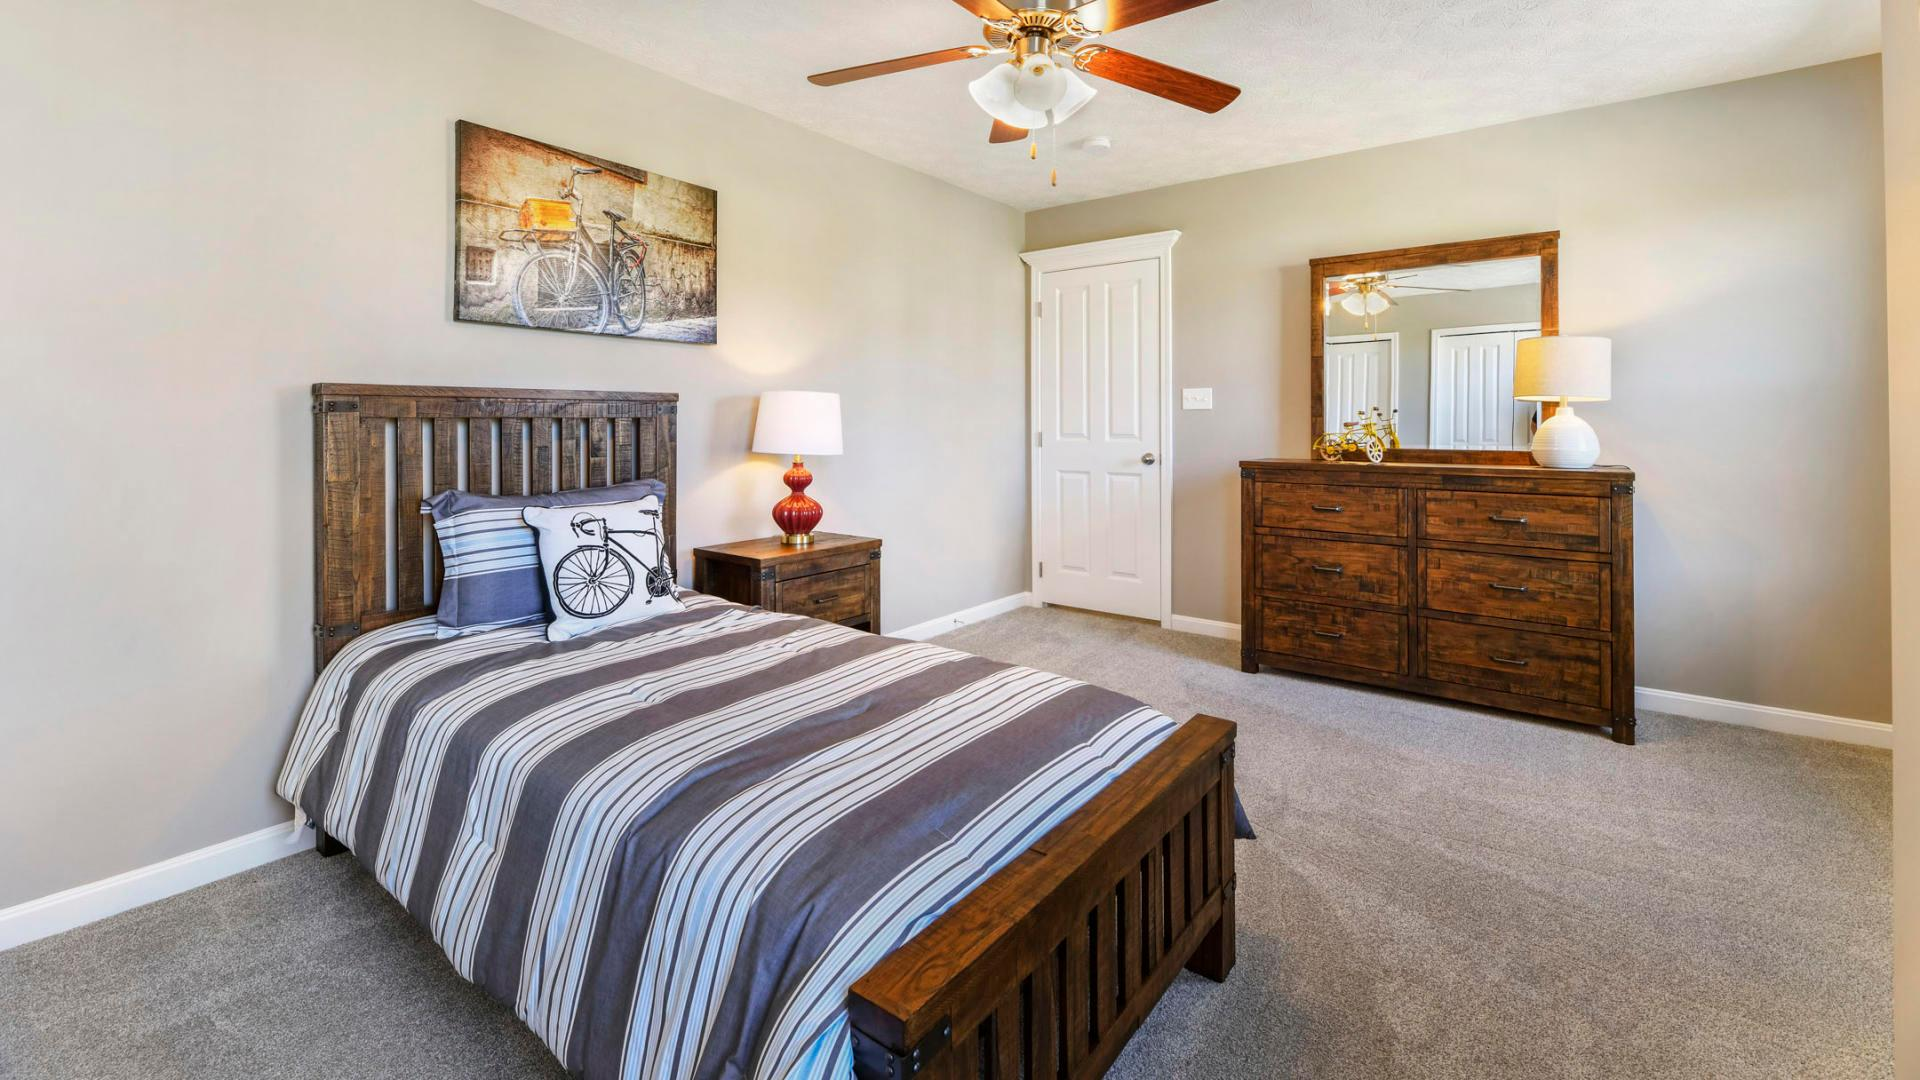 Bedroom featured in the Nashville By Maronda Homes in Pittsburgh, PA